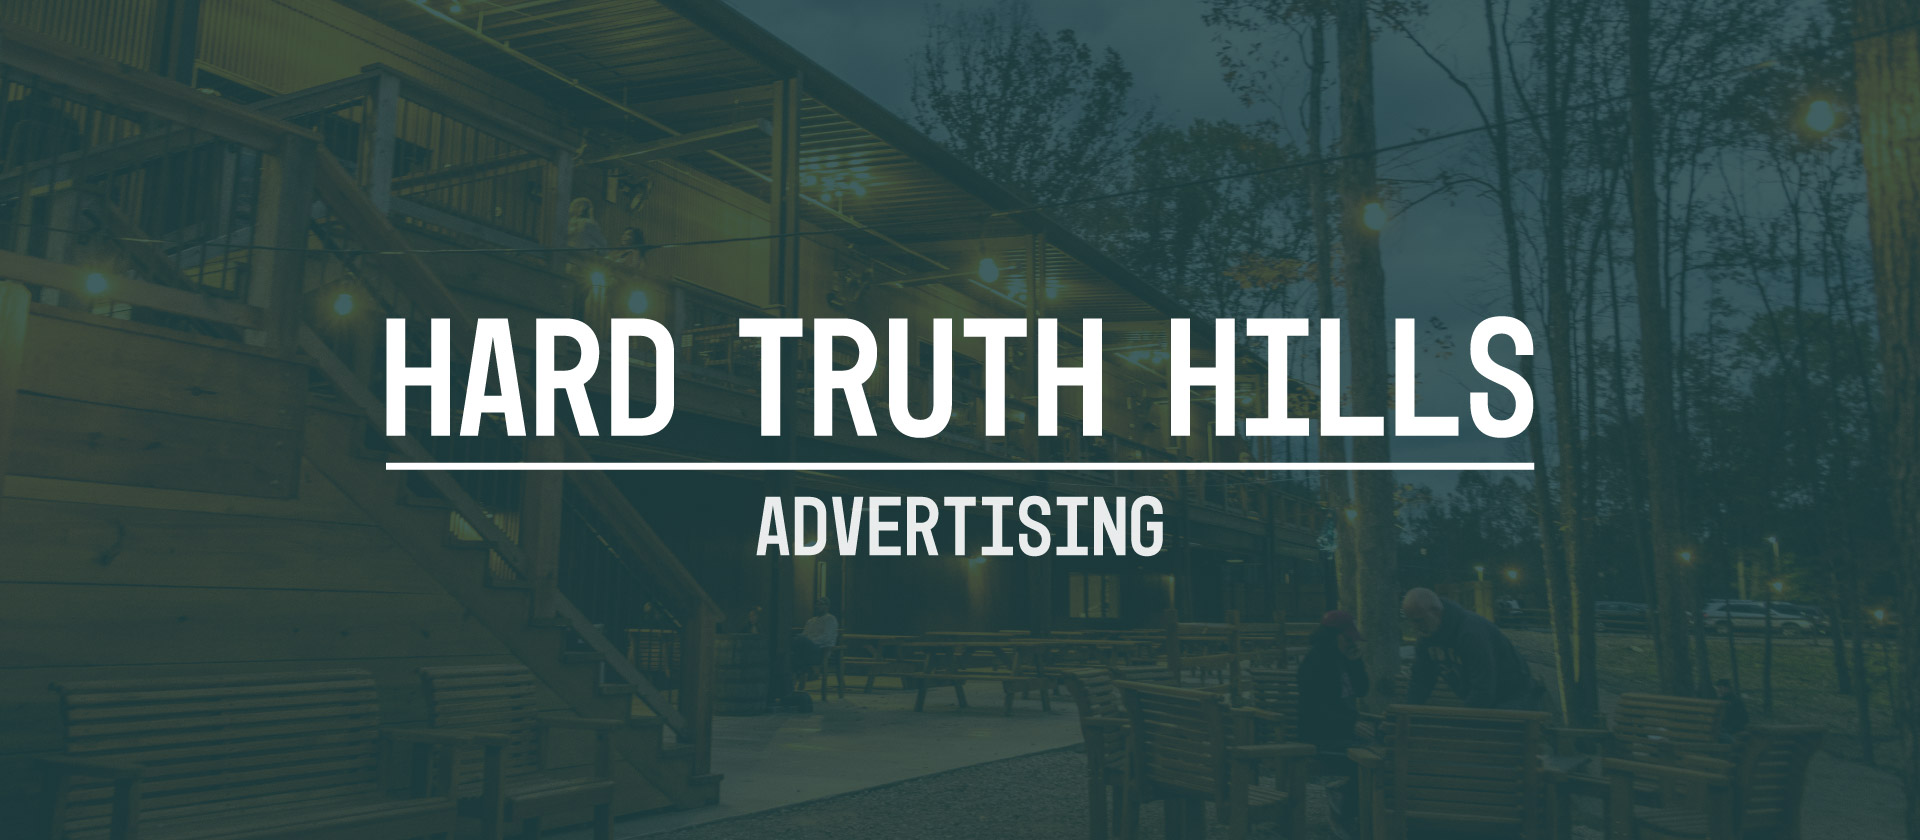 HTH Ad Header Rebranded Advertising: Hard Truth Hills